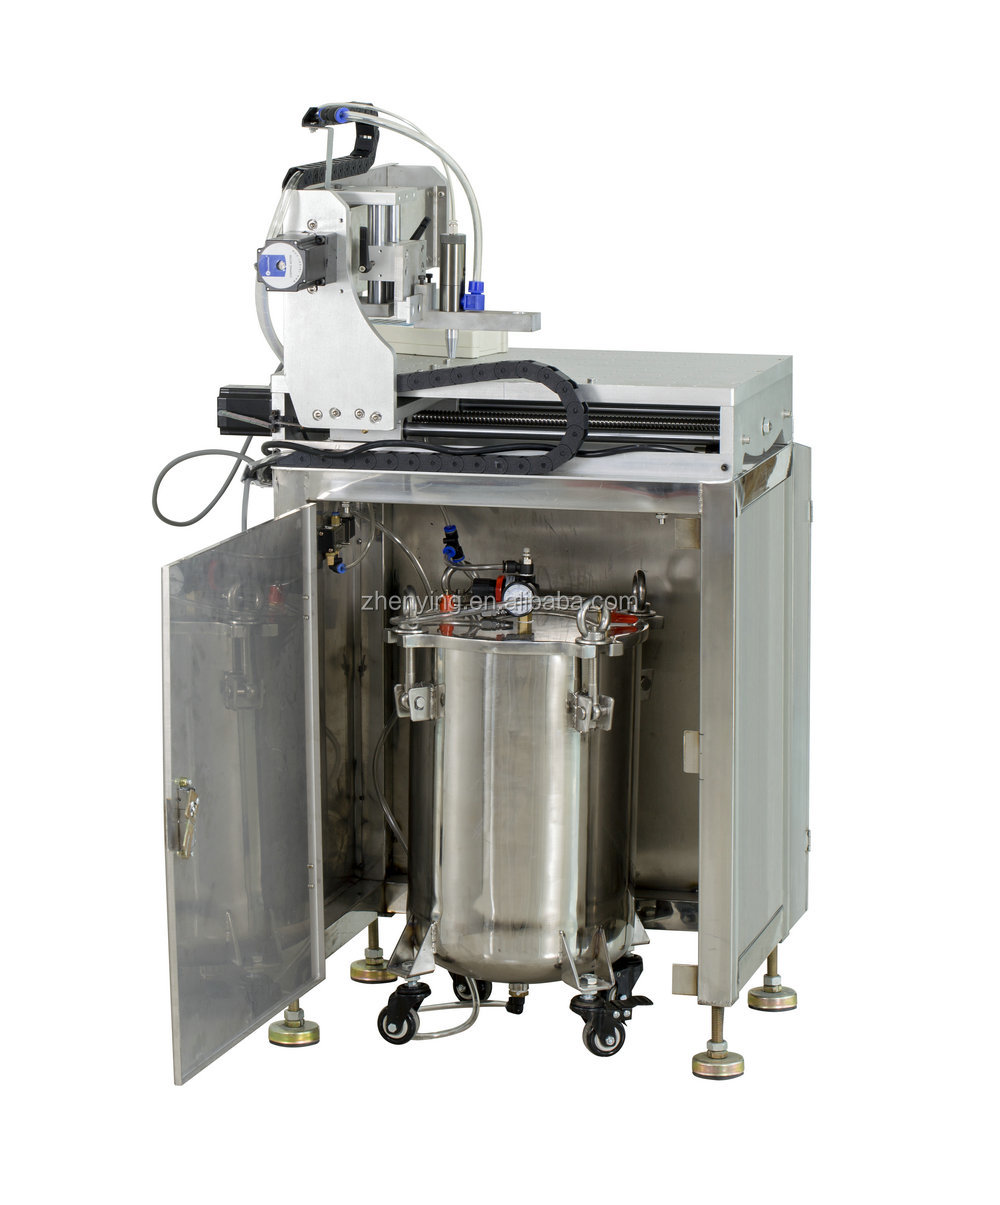 ZY-P01DAutomatic base material dripping machine